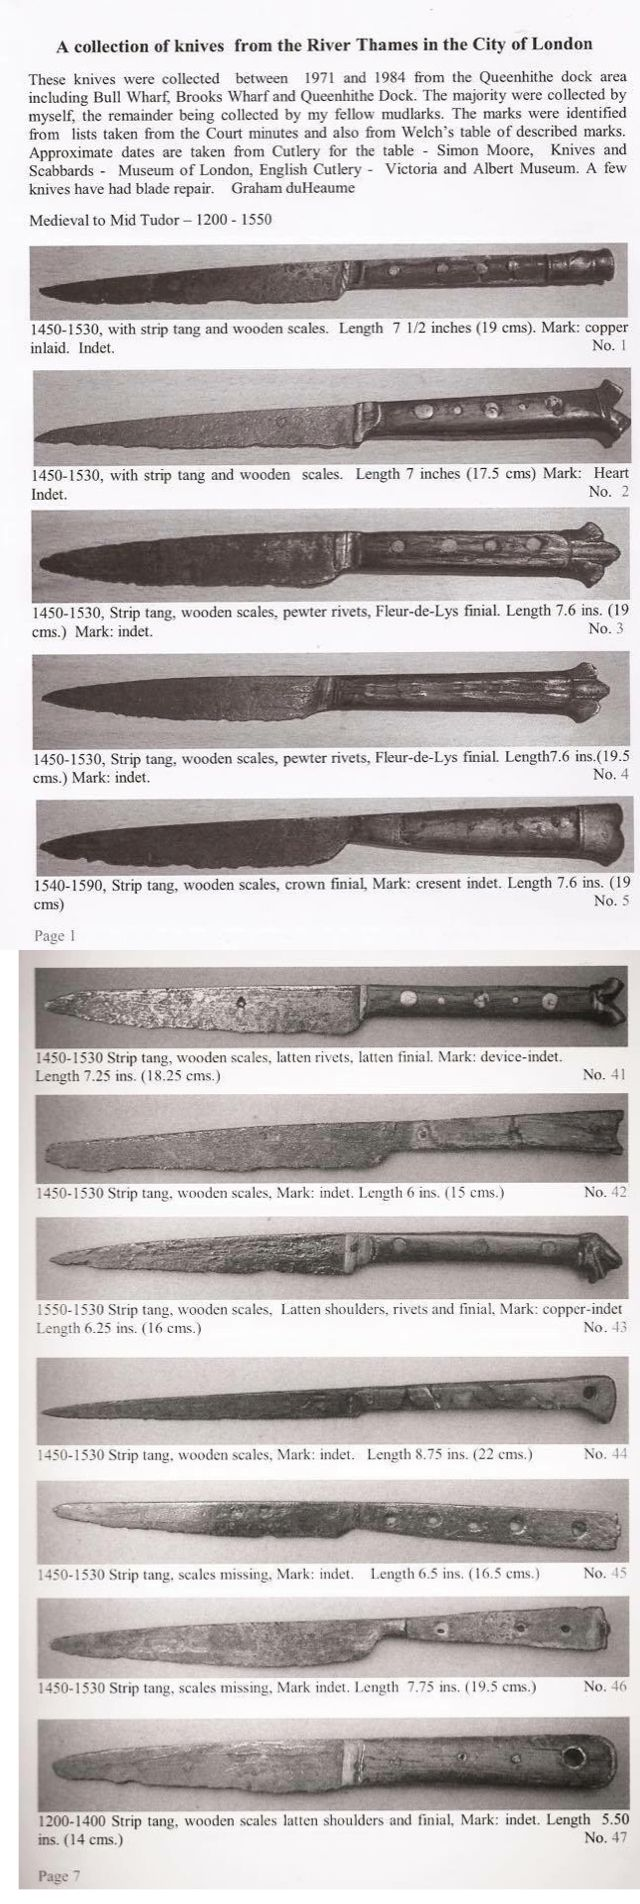 A collection of knives from River Thames in the City of London, England [640x1904]